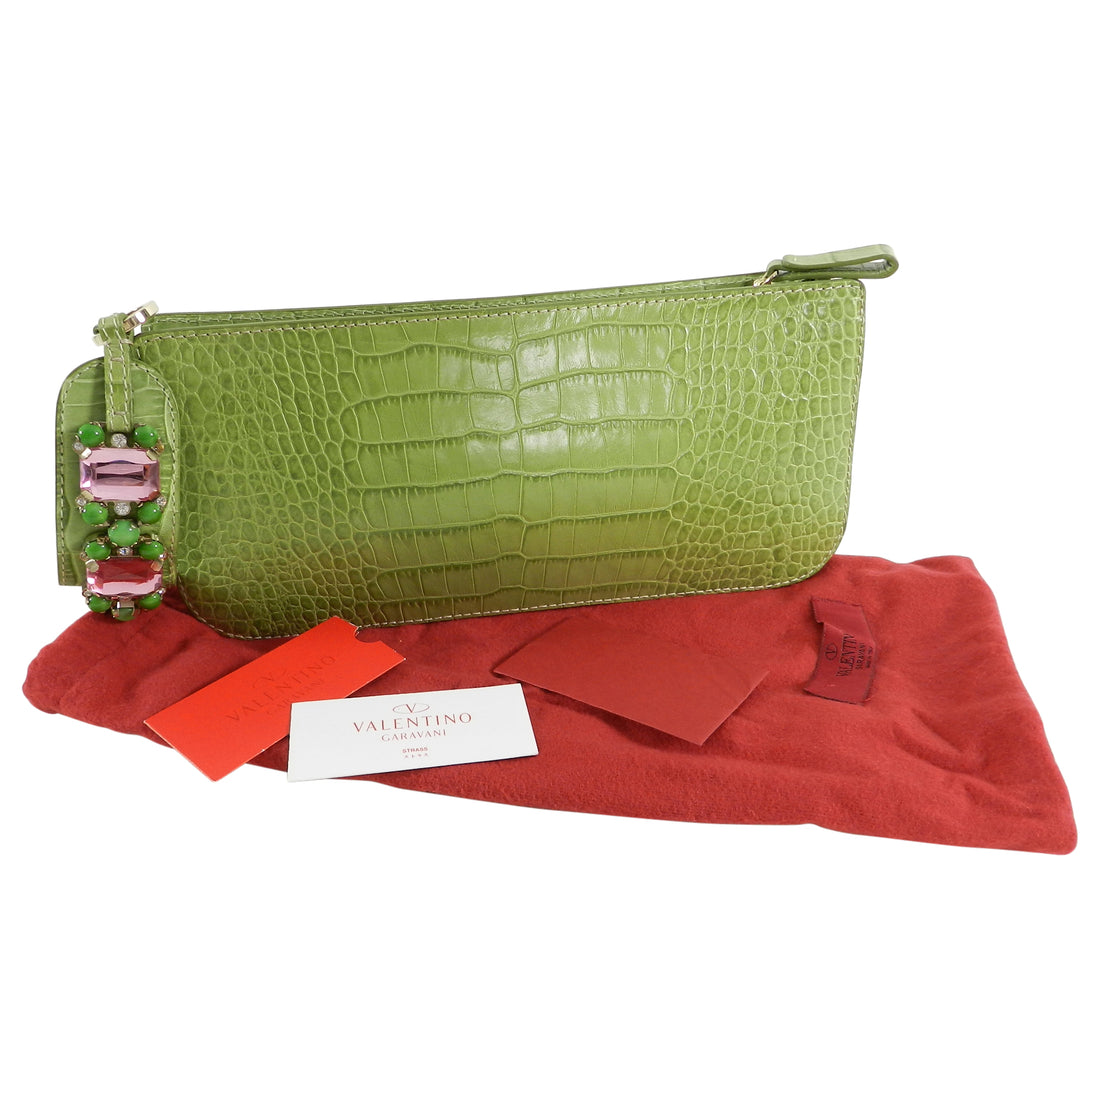 Valentino Green Croc Embossed Leather Jewel Wristlet Bag